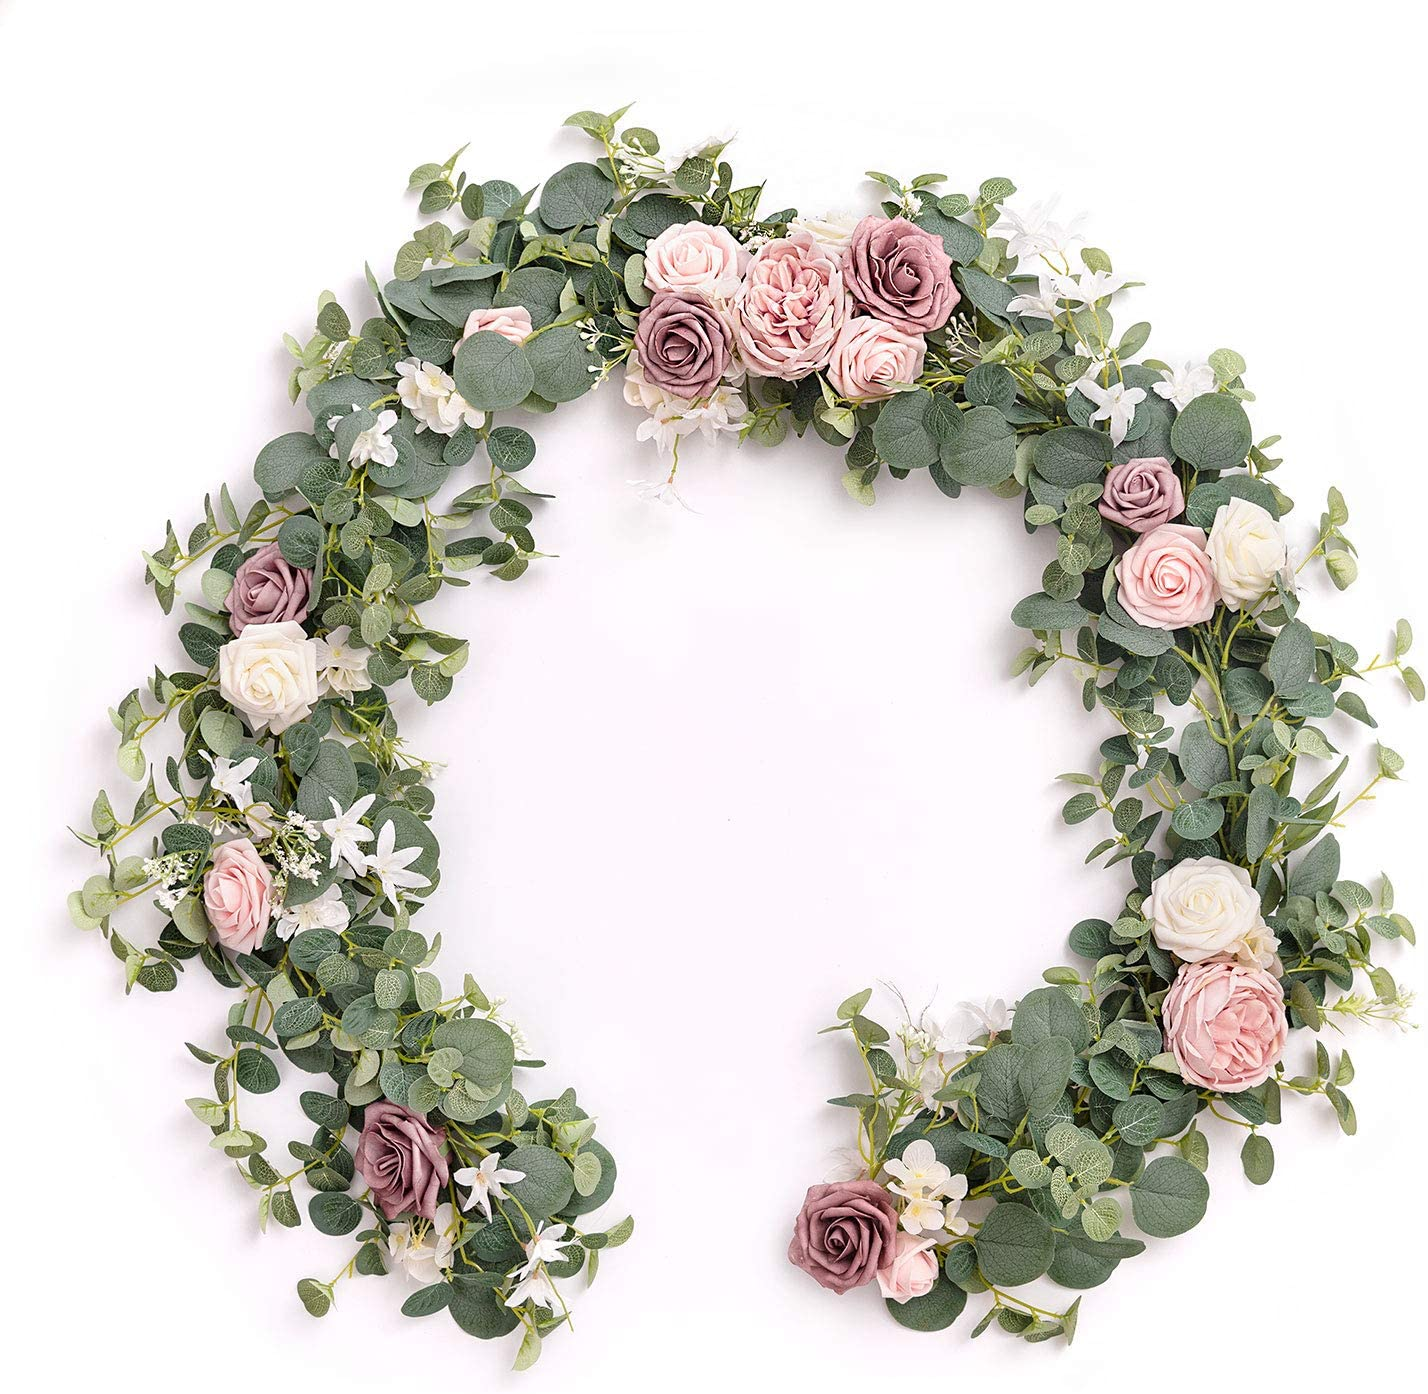 Ling's moment Eucalyptus Garland with Flowers,Table Runner with Flowers Handcrafted Wedding Centerpieces for Rehearsal Dinner Bridal Shower | Garden Dusty Rose